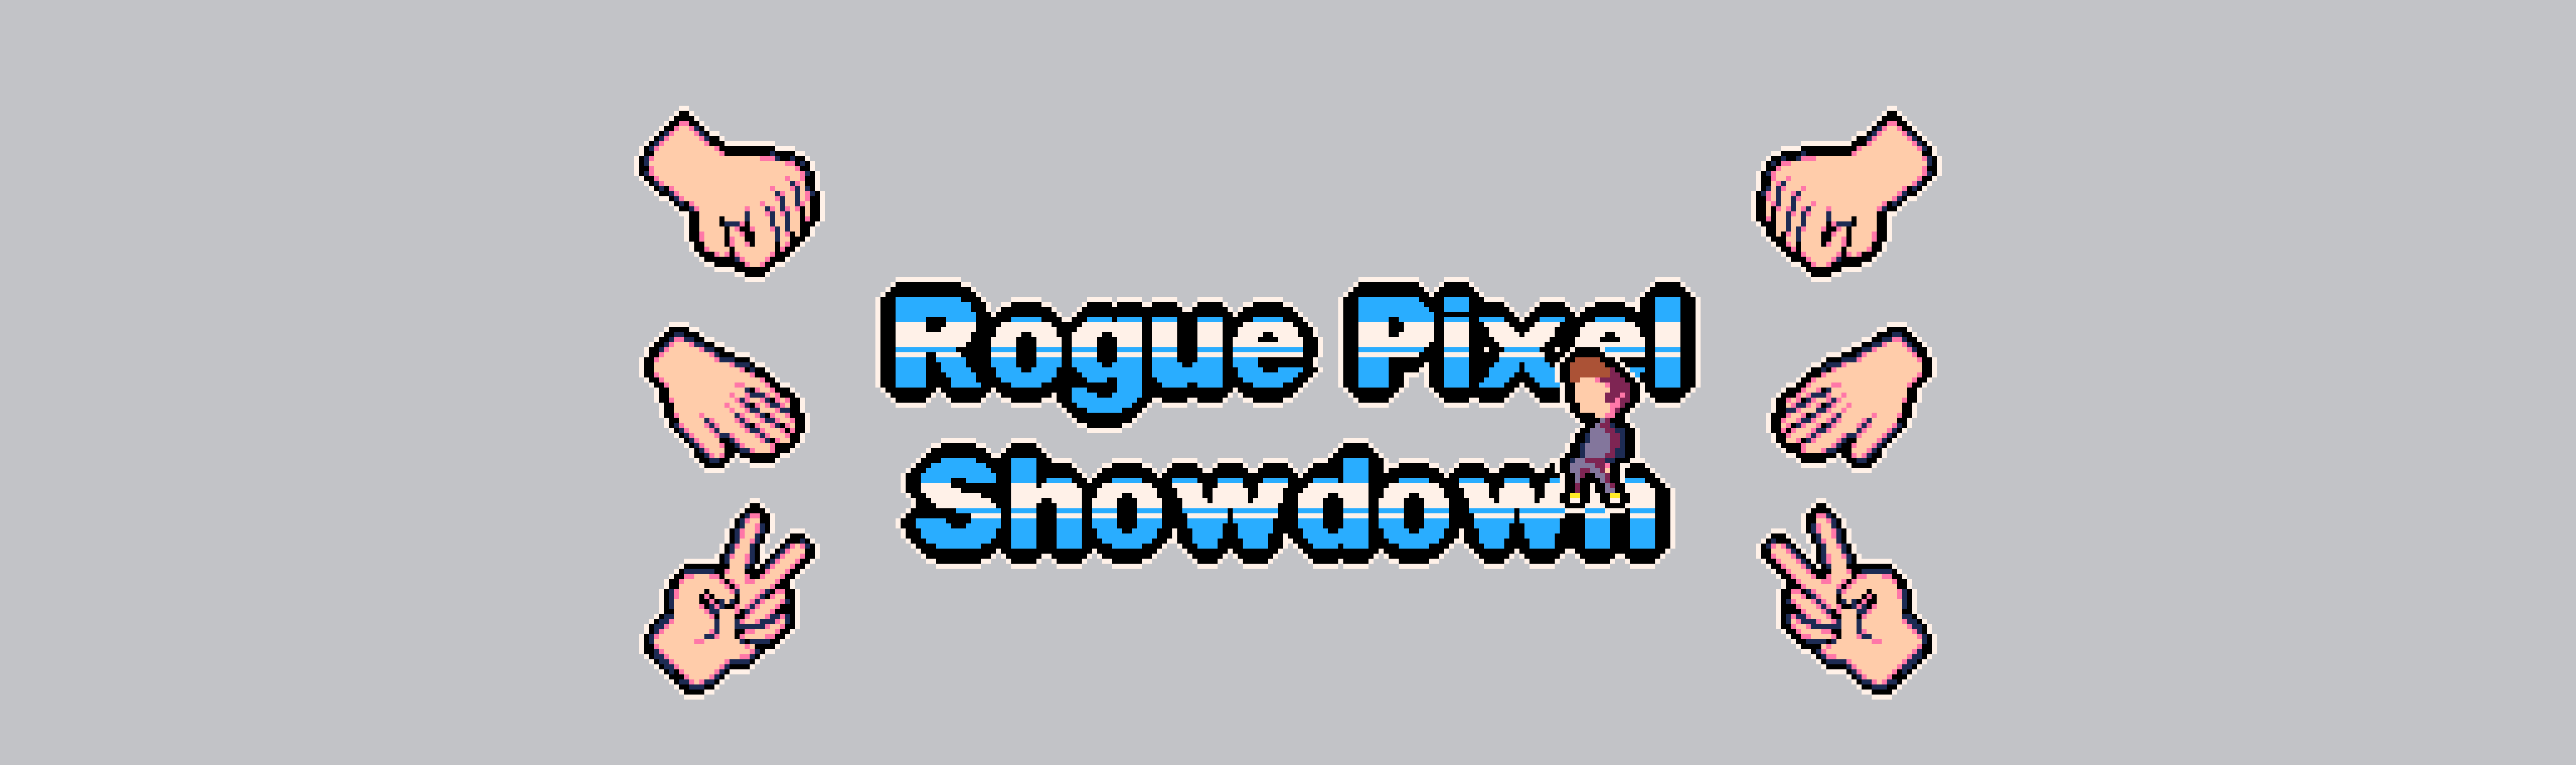 Rogue Pixel Showdown